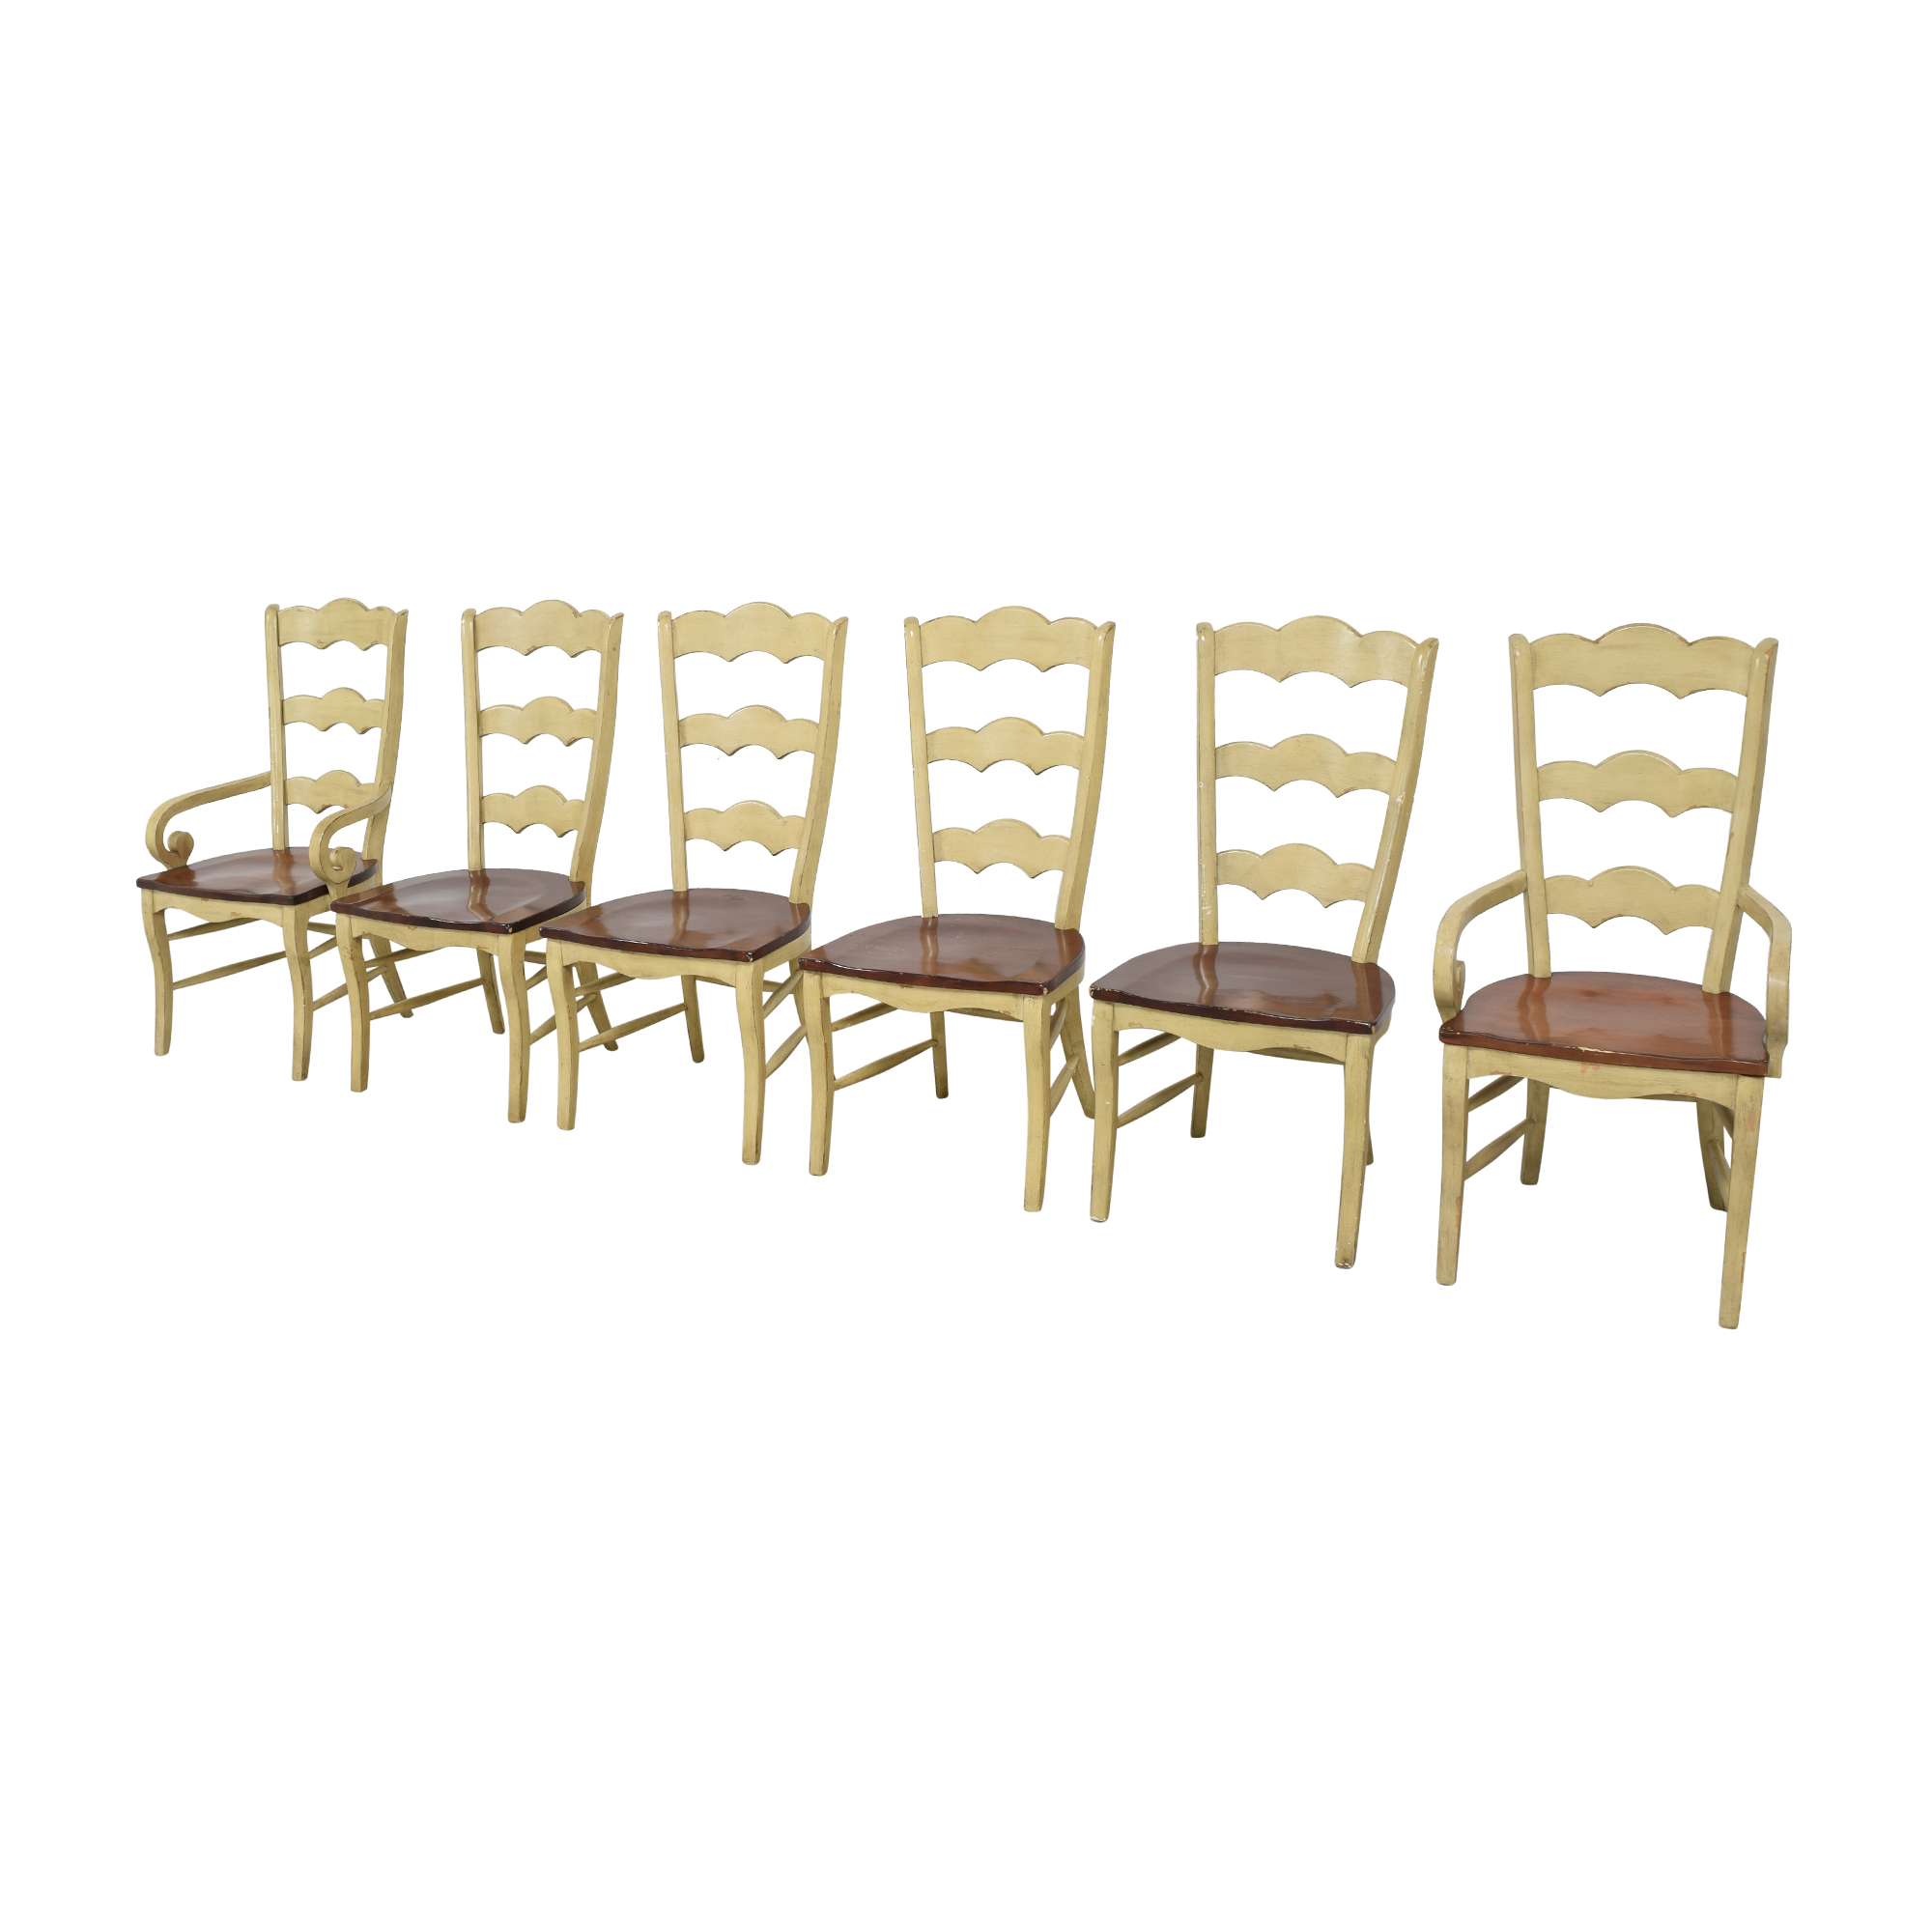 Hooker Furniture Hooker Dining Chairs dimensions